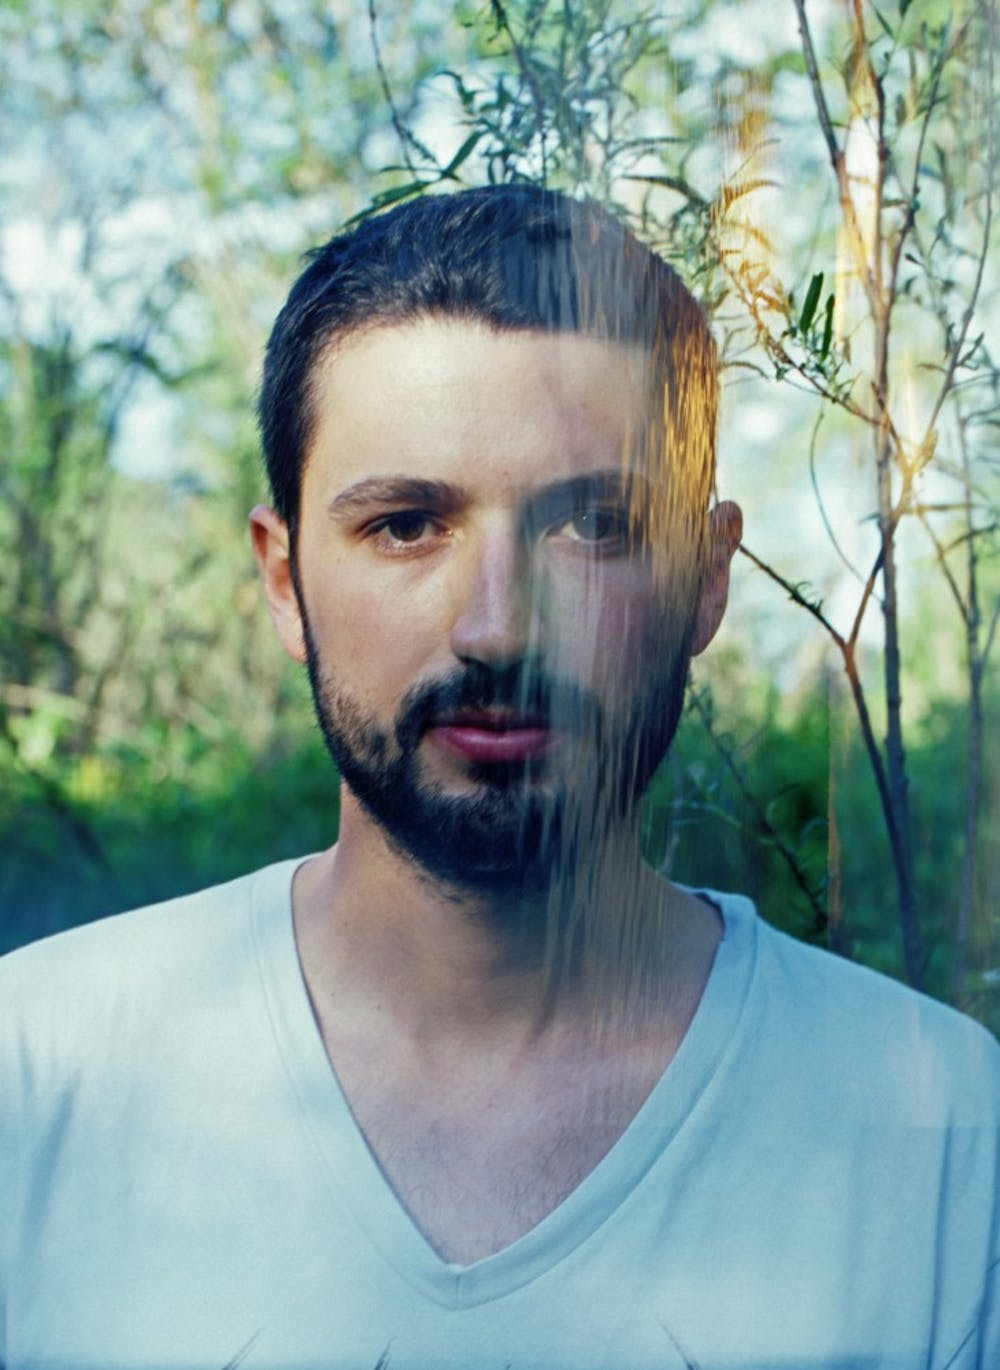 S. Carey: from Bon Iver to Taylor